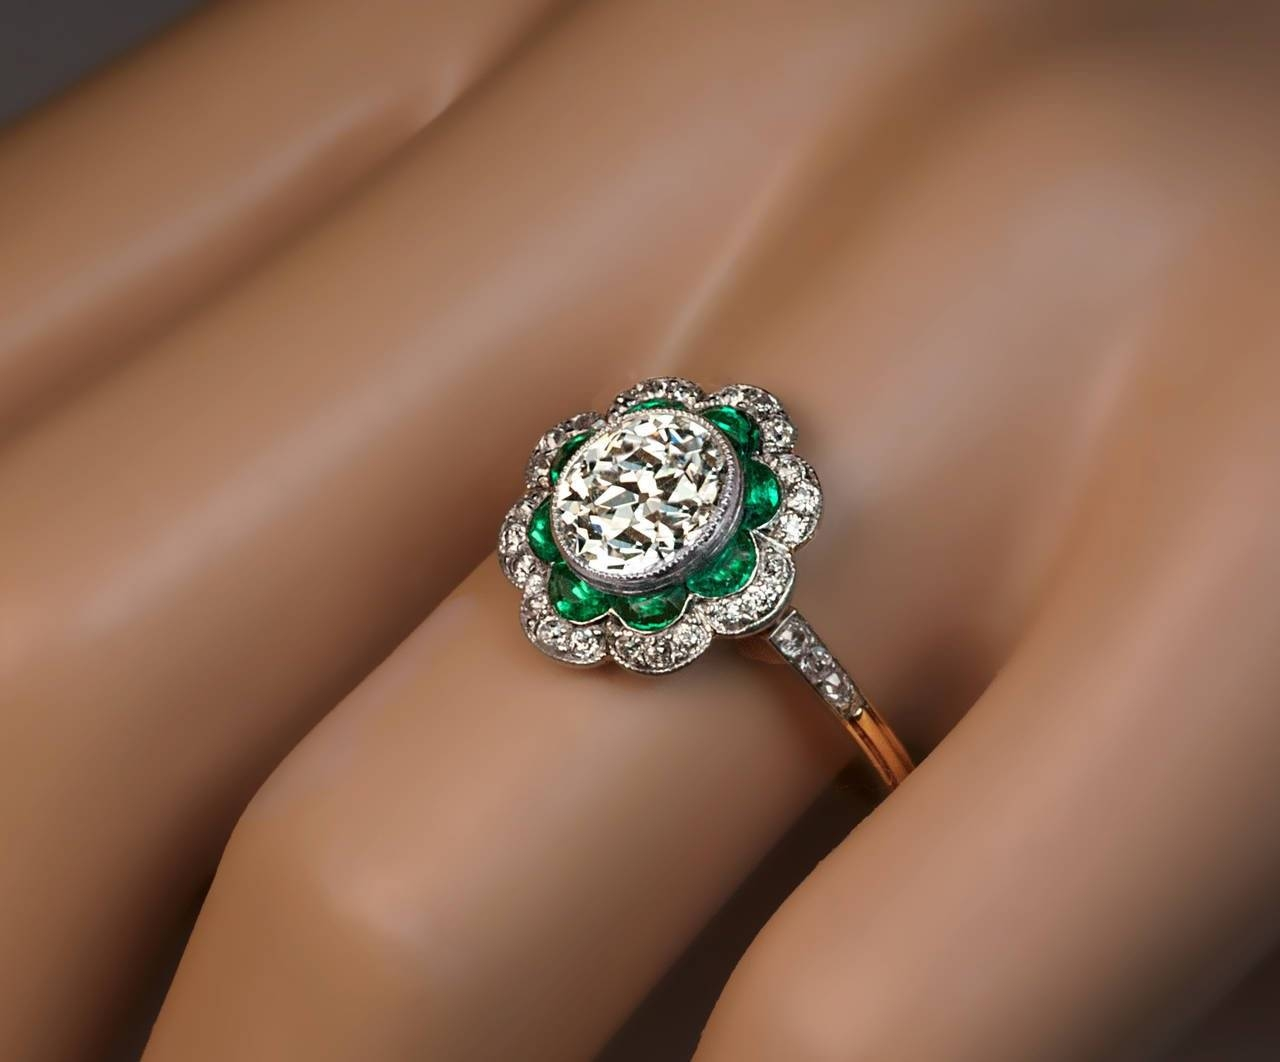 1920s Art Deco Emerald Diamond Platinum Engagement Ring At 1stdibs Throughout Emrald Engagement Rings (View 5 of 15)